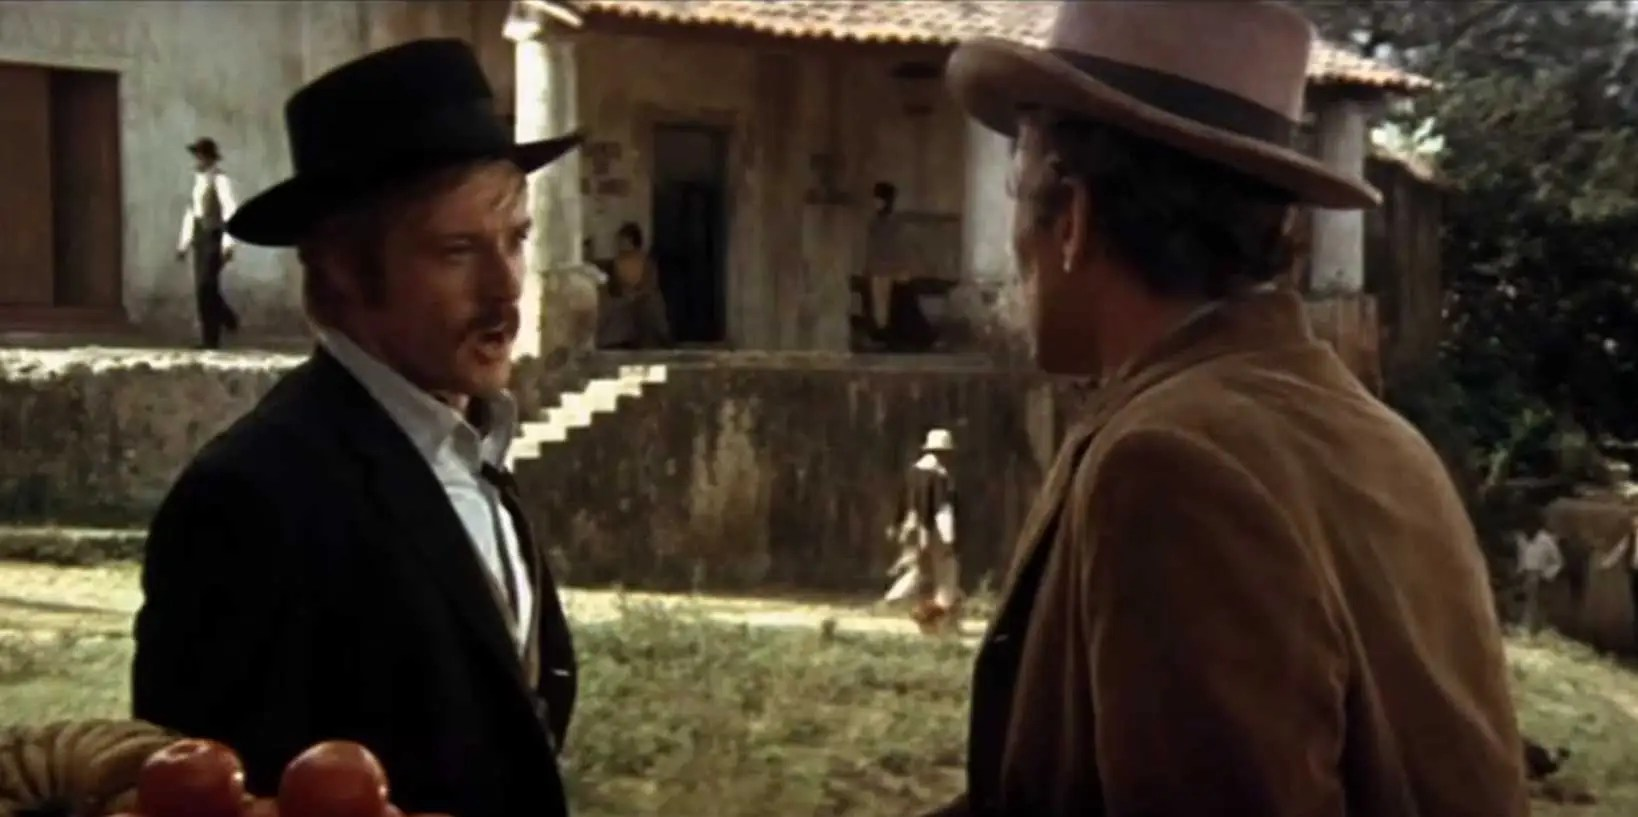 """Butch Cassidy and the Sundance Kid"" (1969): Wild West outlaws Butch Cassidy (Paul Newman) and the ""Sundance Kid"" (Robert Redford) flee to Bolivia in search of a more successful criminal career."